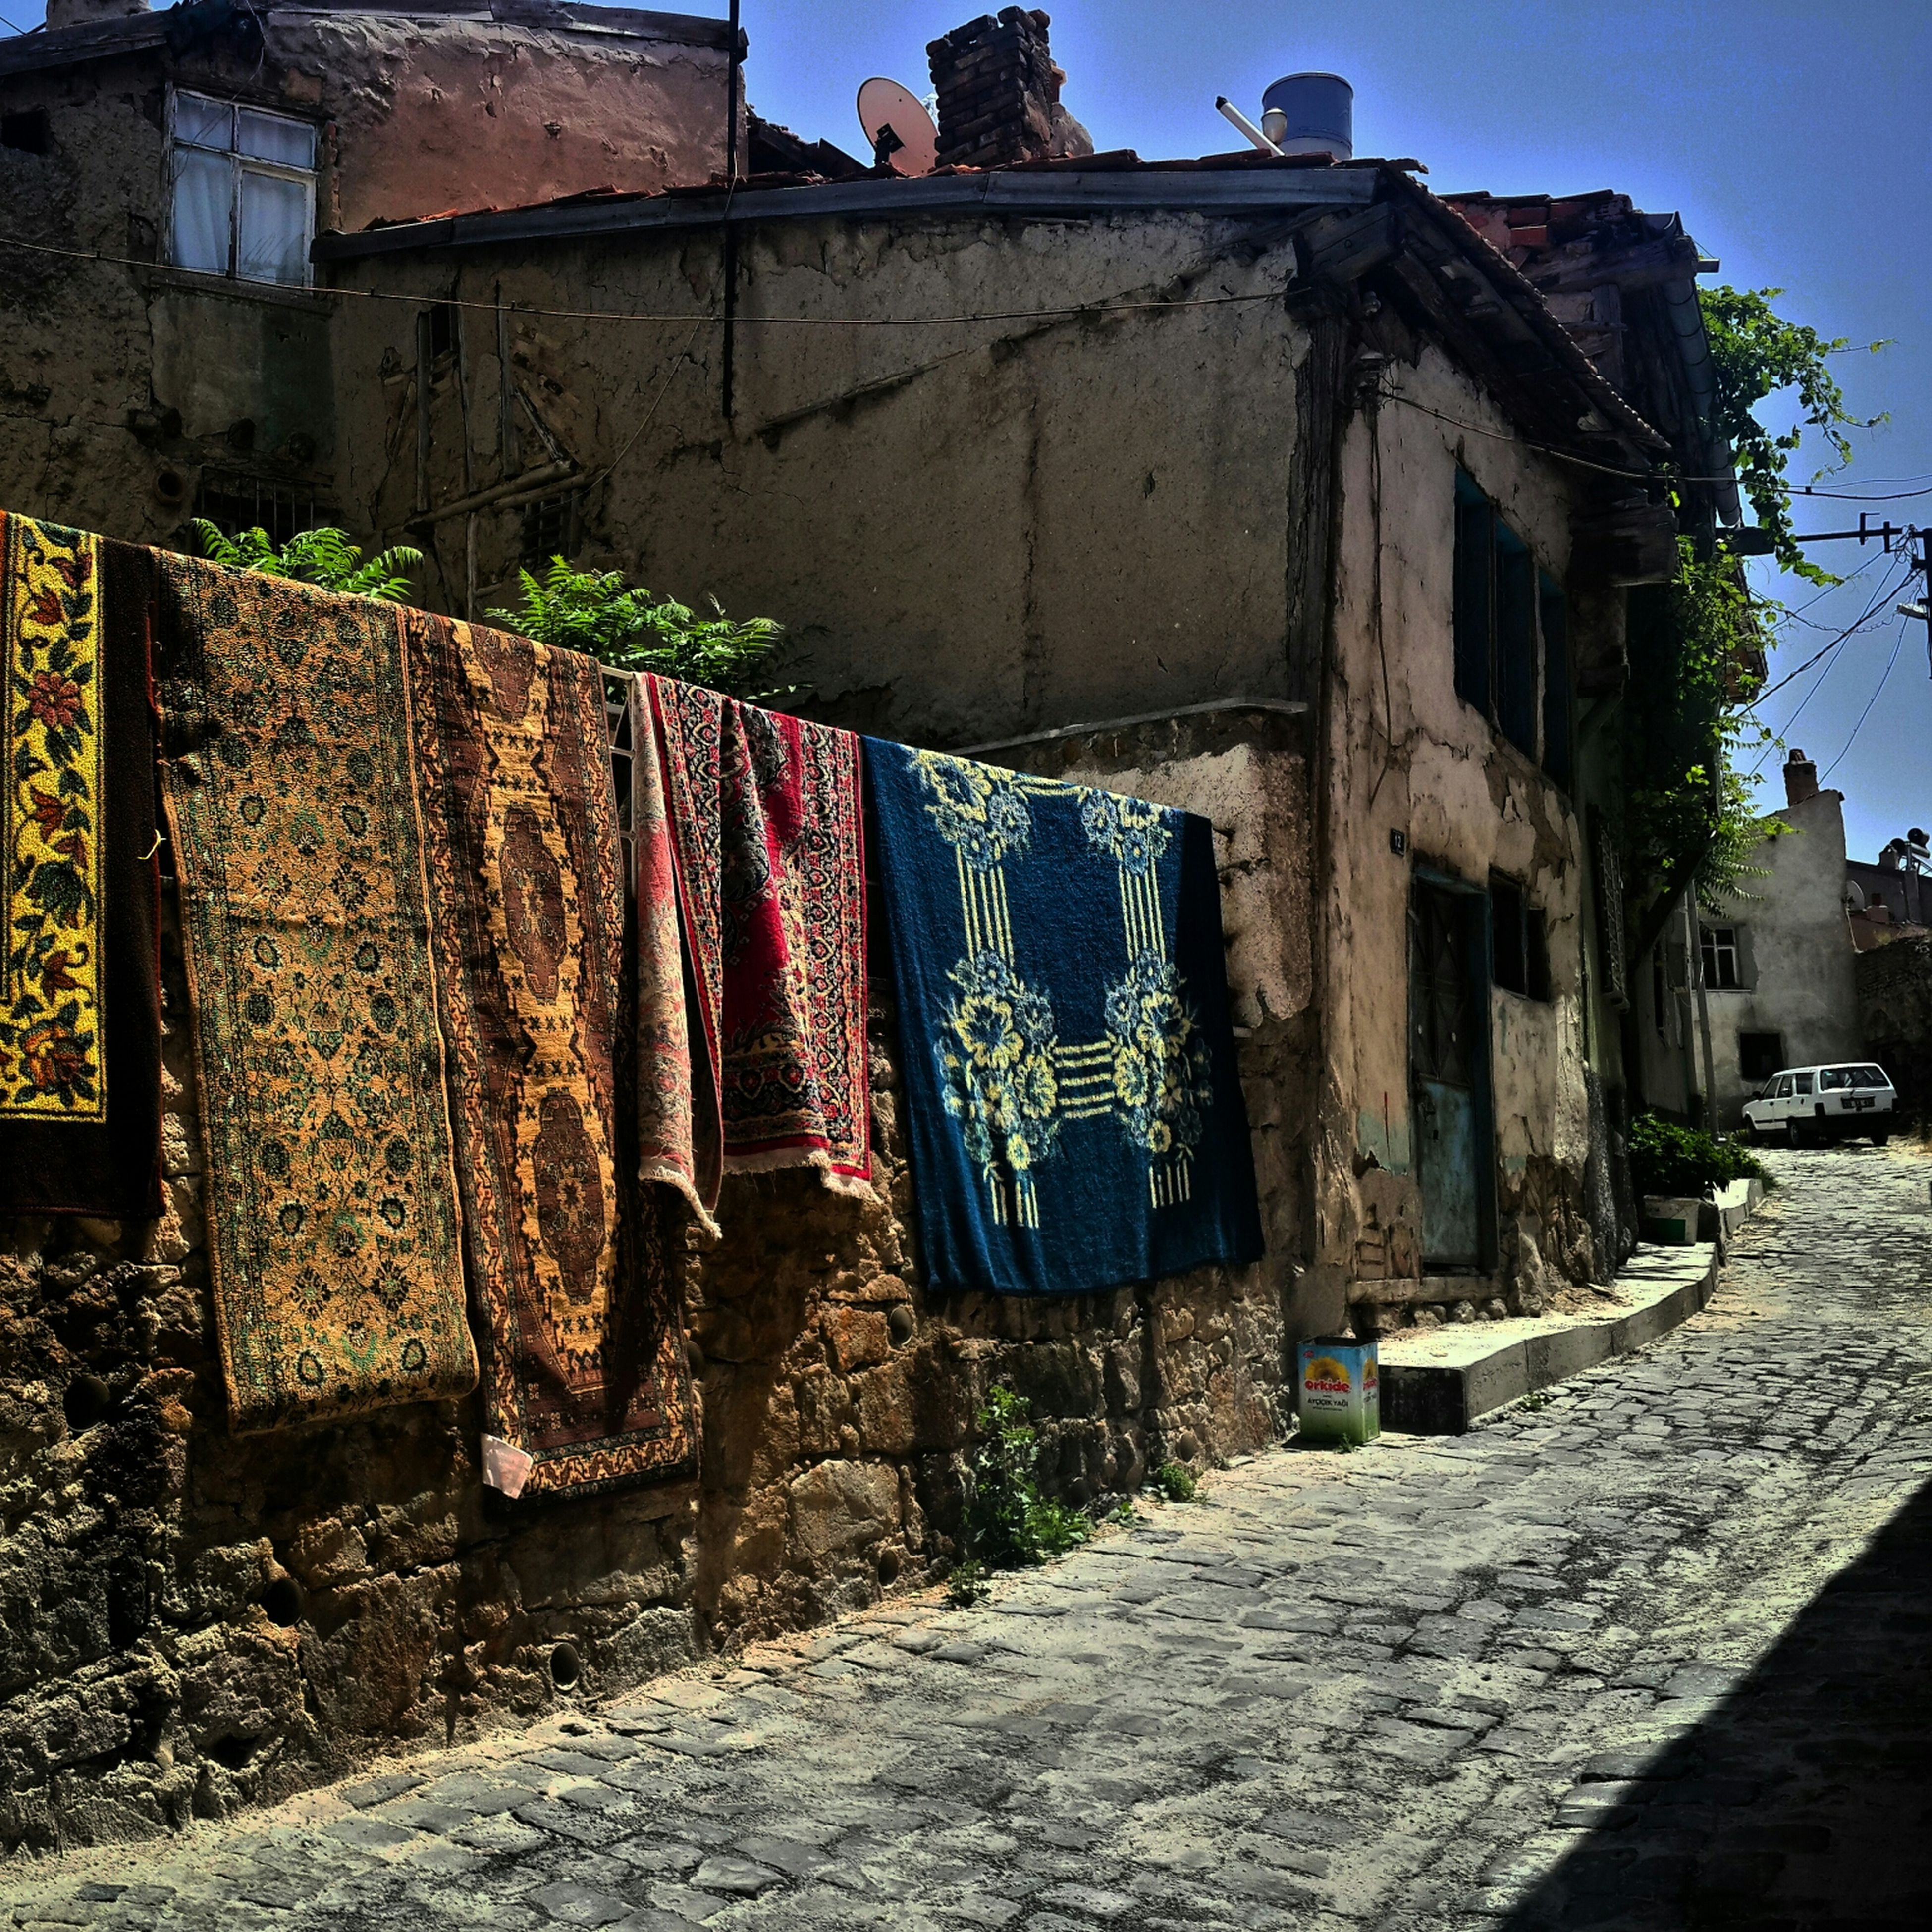 architecture, built structure, building exterior, old, abandoned, house, damaged, weathered, wall - building feature, building, blue, obsolete, sunlight, run-down, street, residential building, deterioration, residential structure, day, outdoors